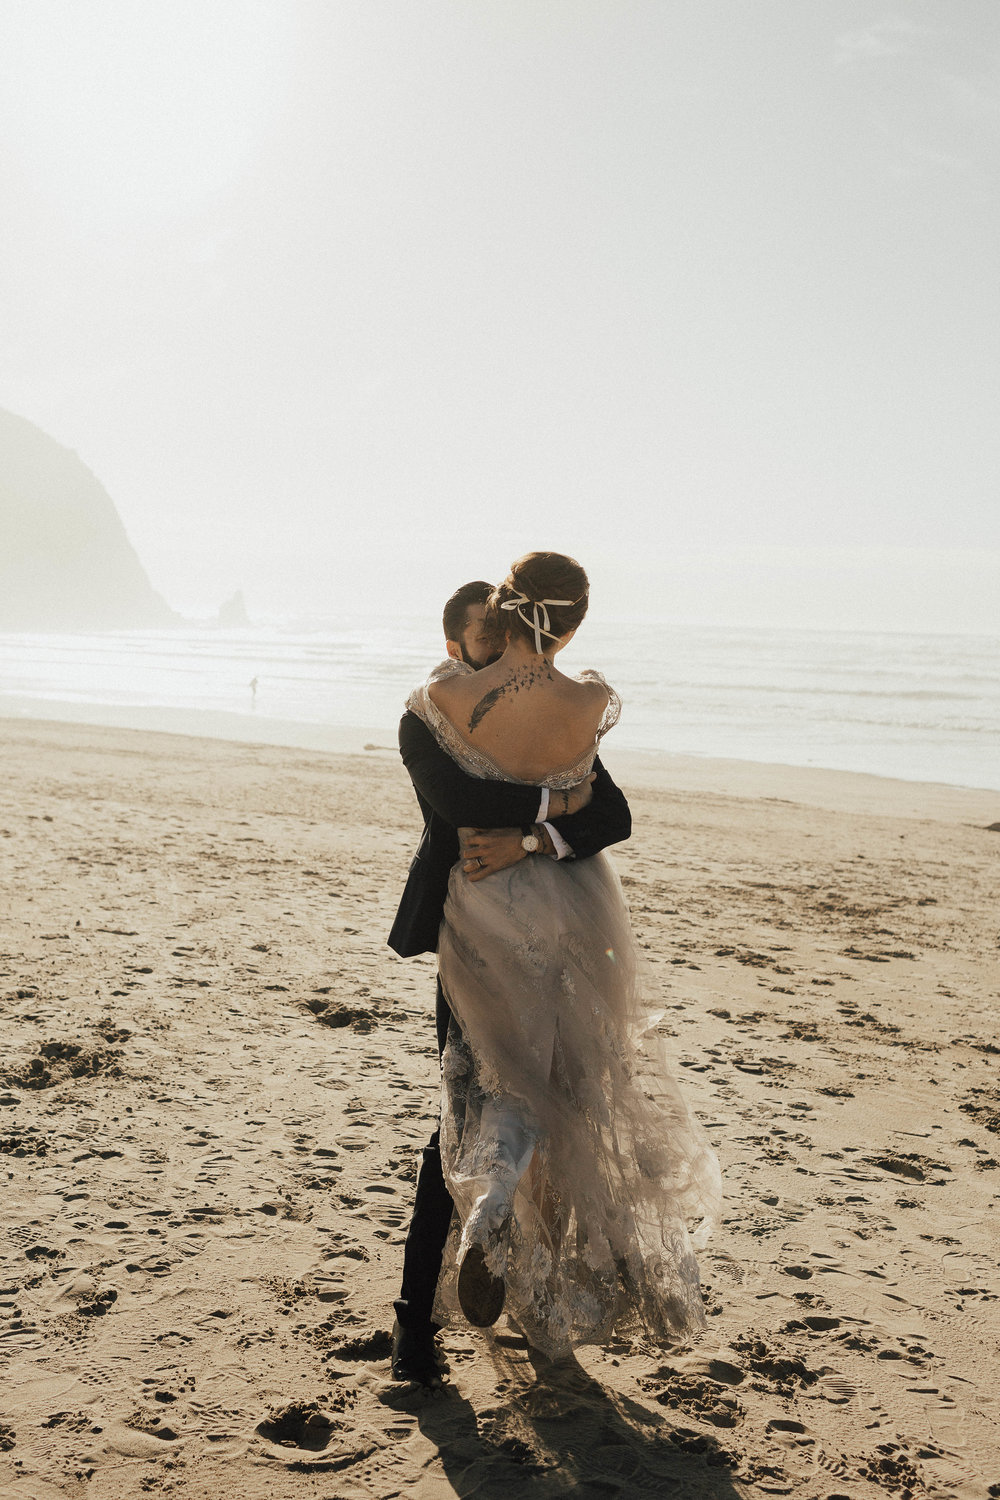 Cannon Beach Elopement - Michelle Larmand Photography - 037